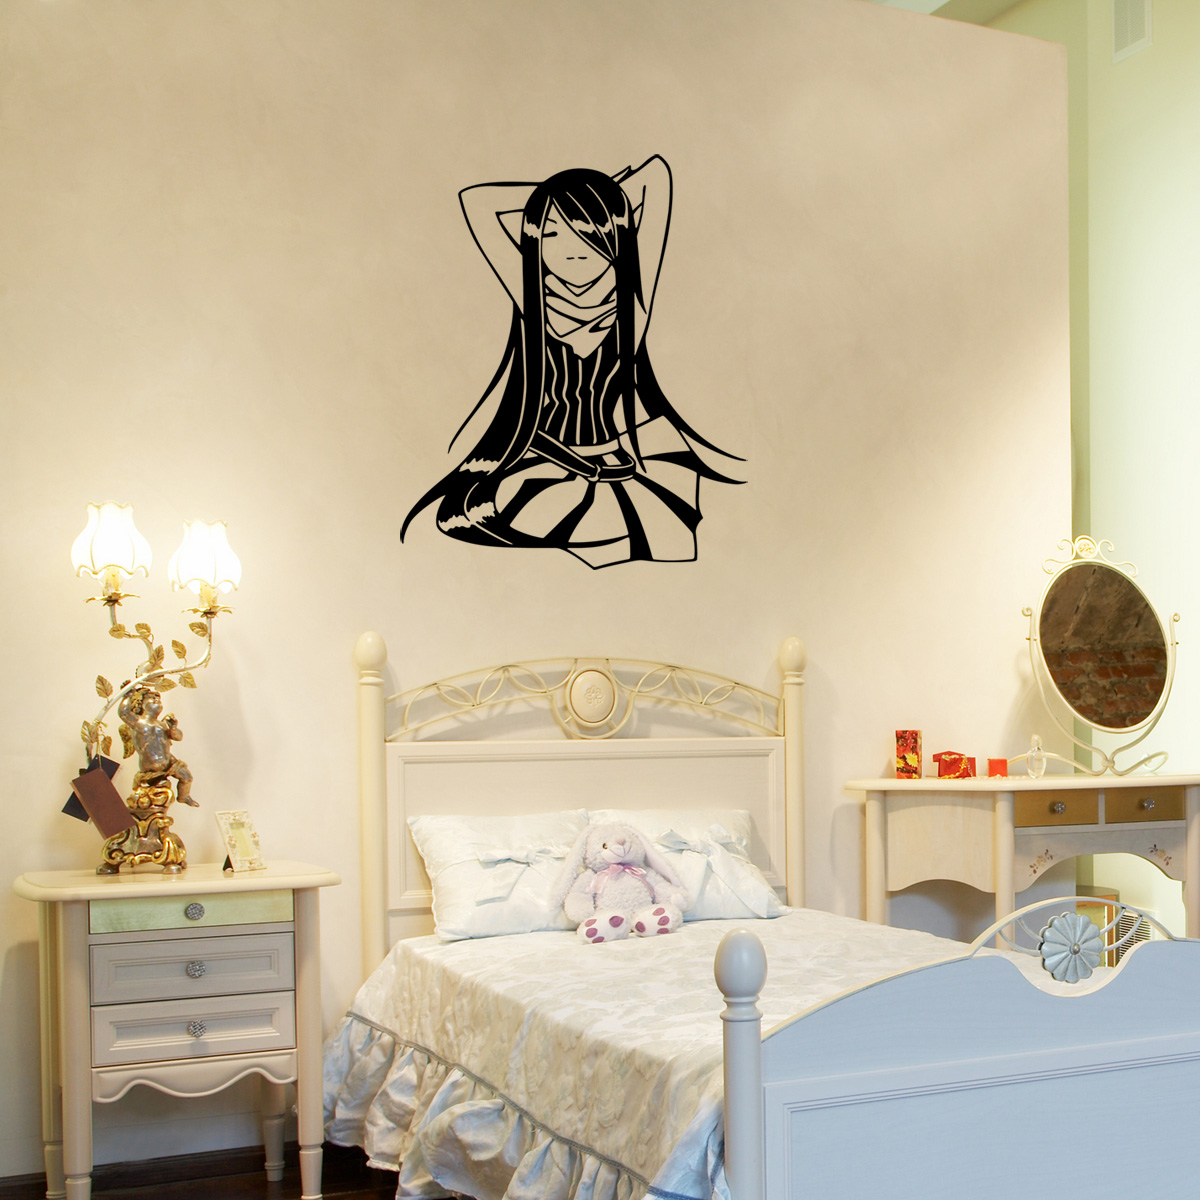 stickers muraux pour les enfants sticker zen fille. Black Bedroom Furniture Sets. Home Design Ideas